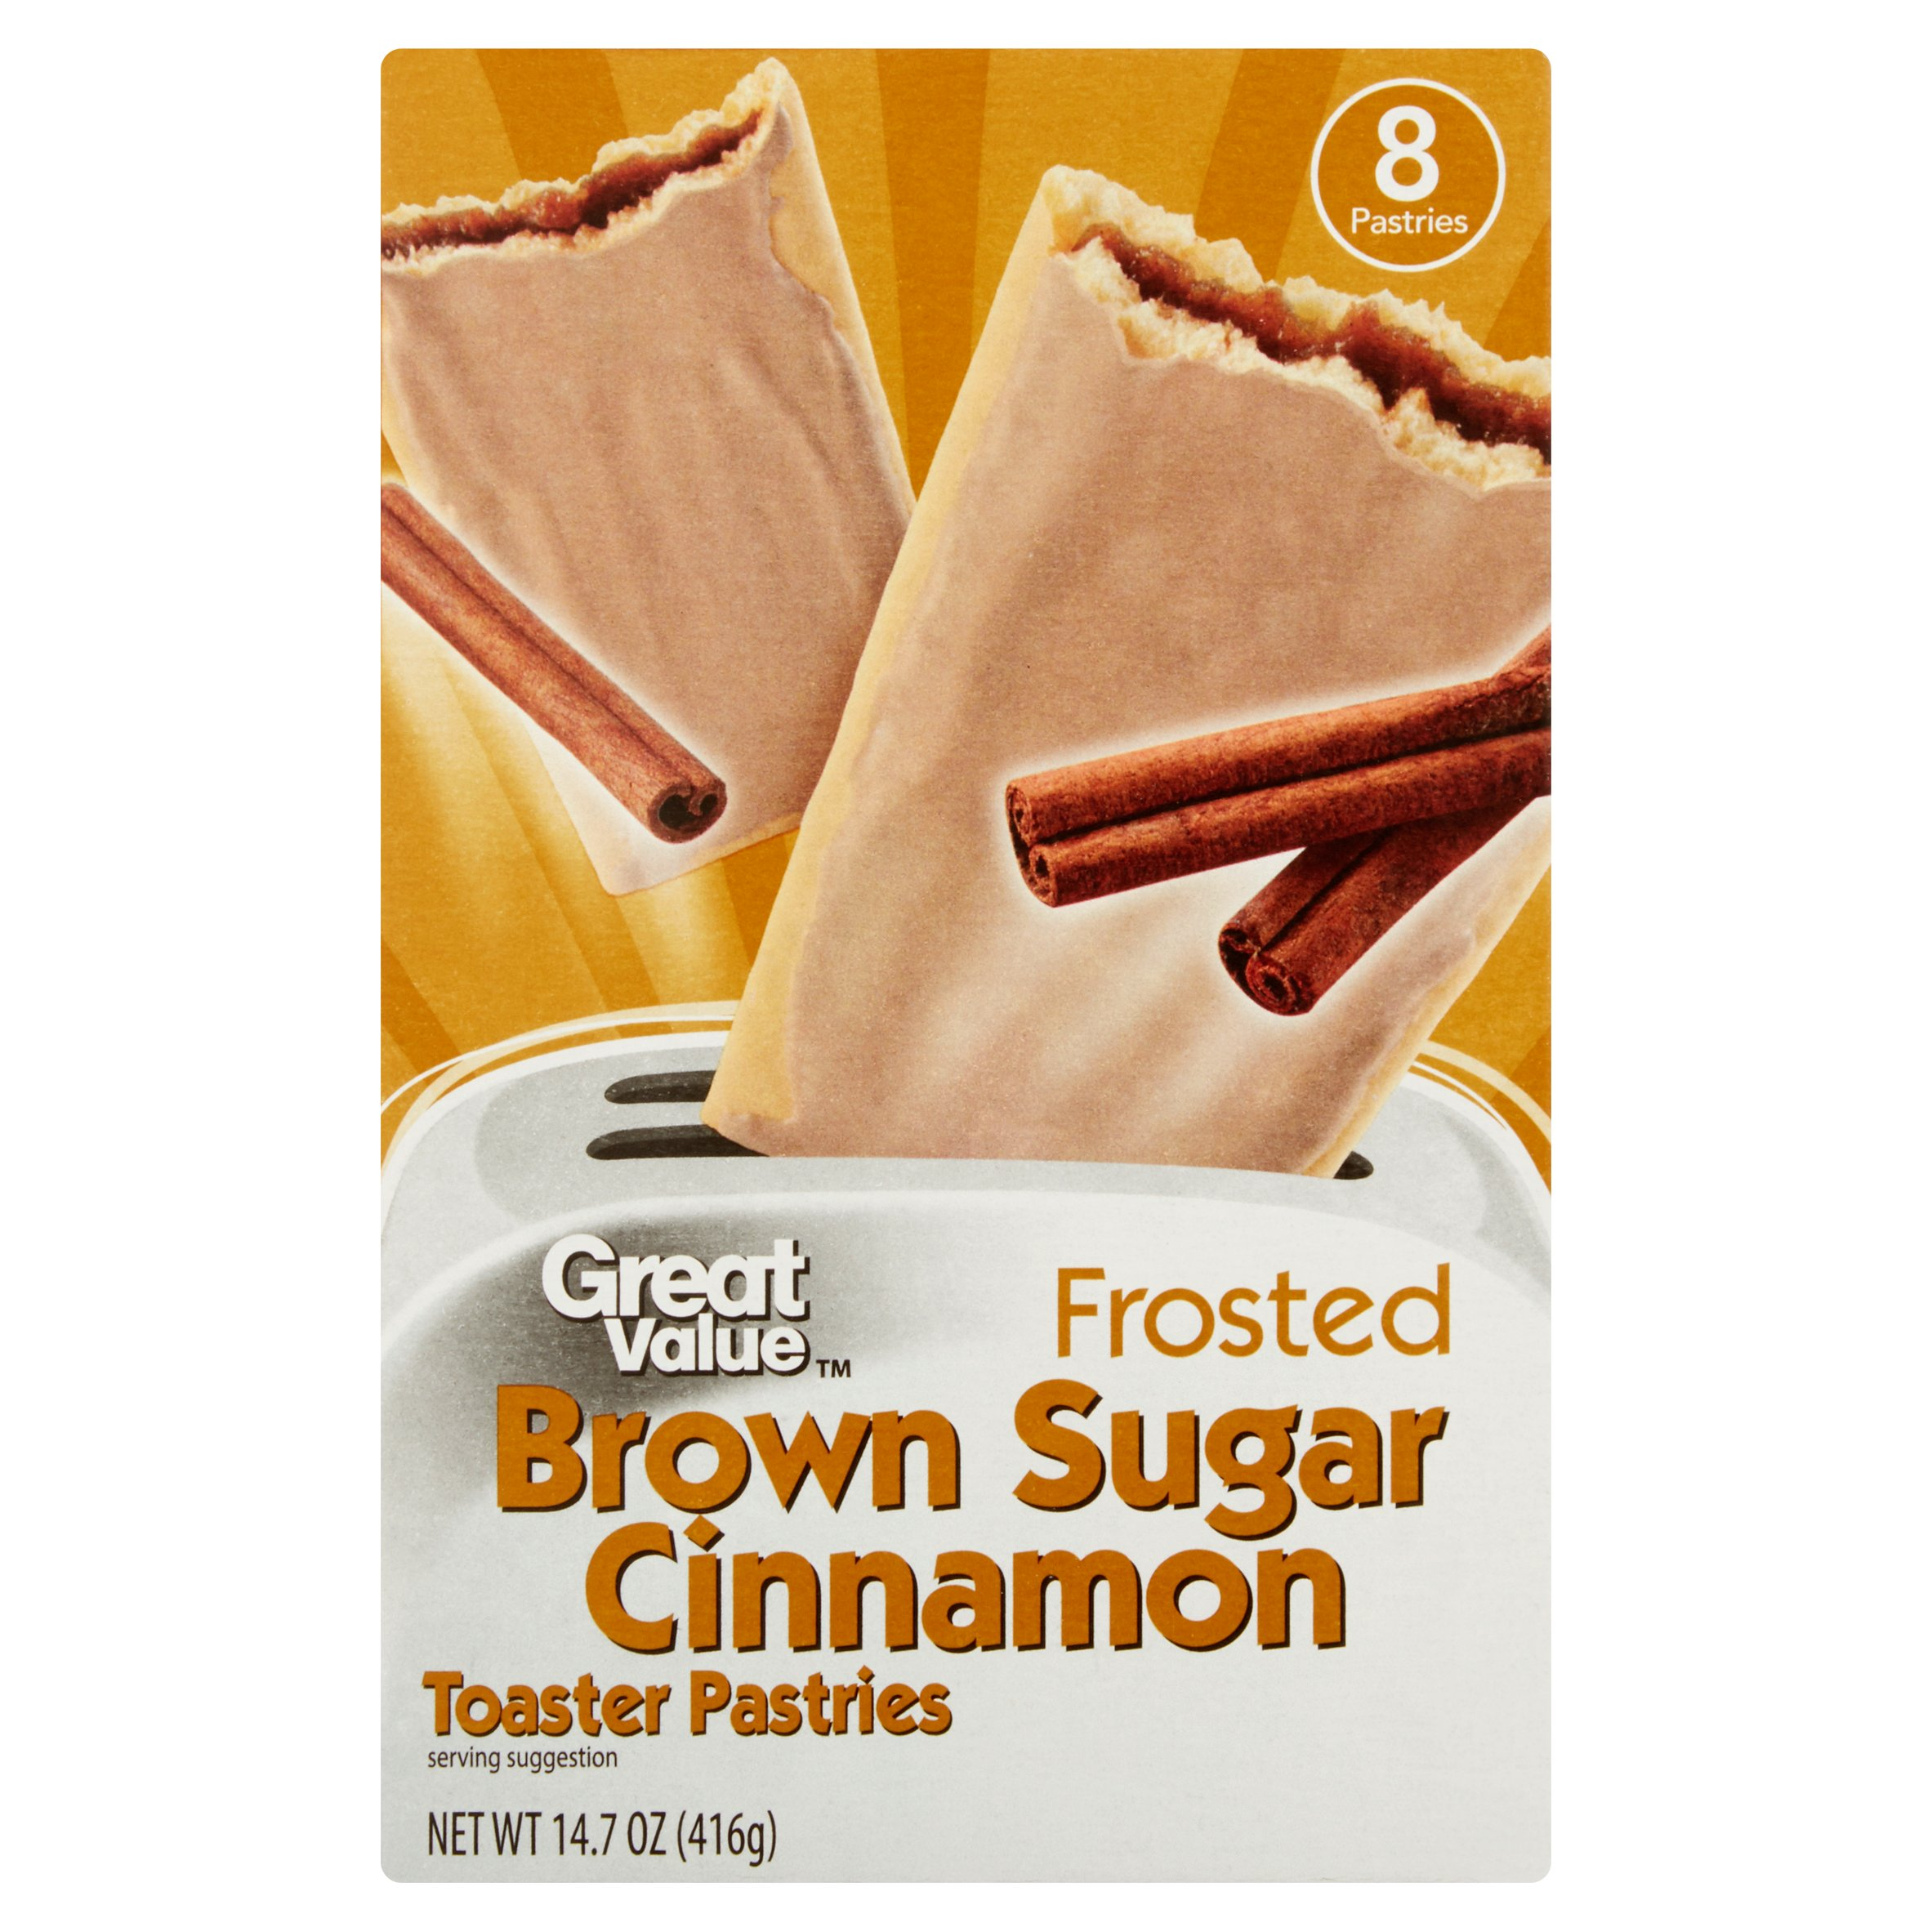 Great Value Frosted Brown Sugar Cinnamon Toaster Pastries, 8 Ct by Wal-Mart Stores, Inc.